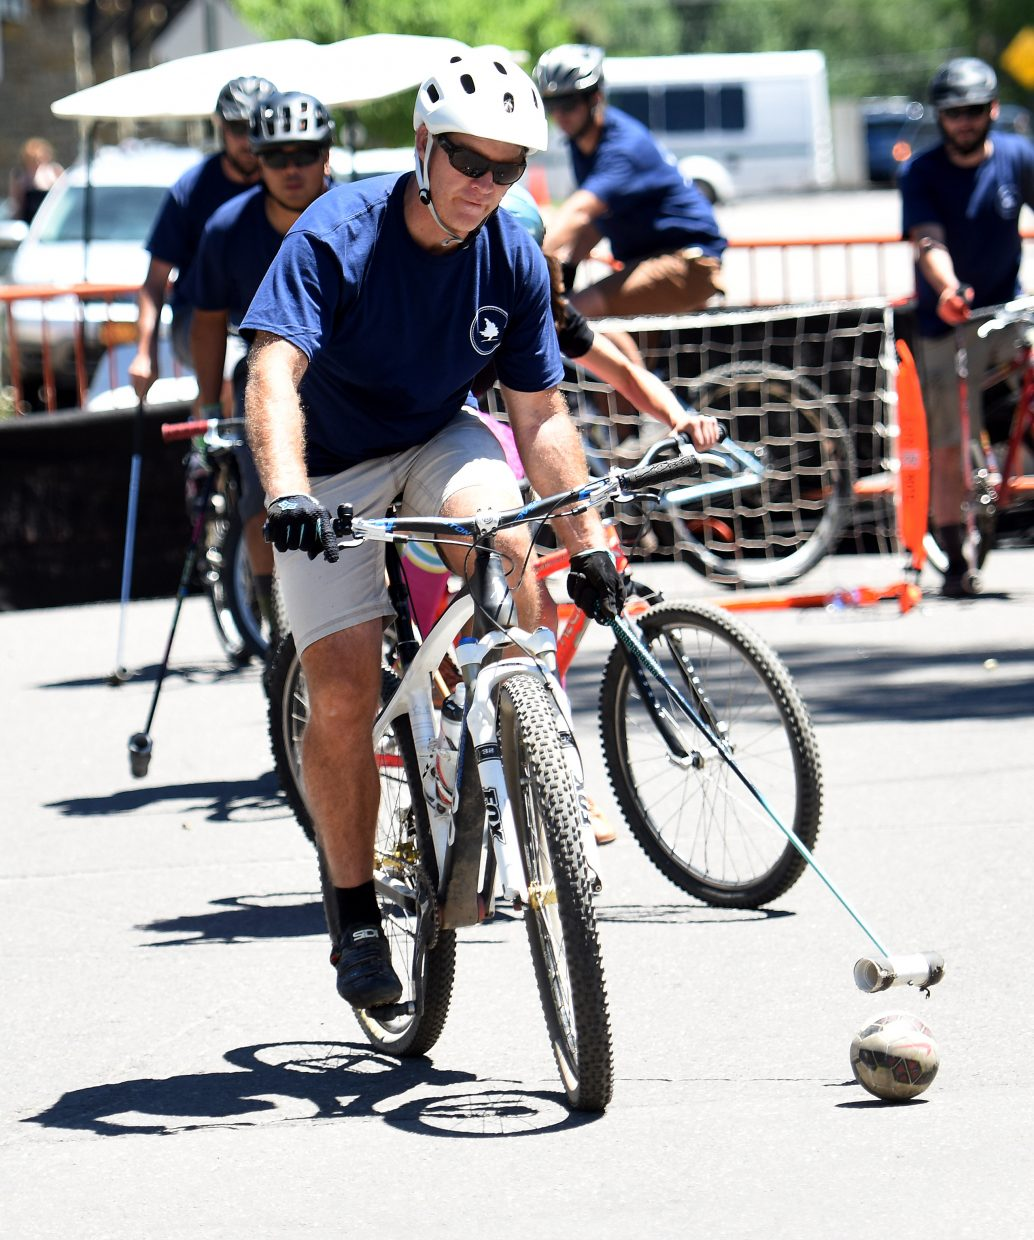 The team advances the ball up the court Saturday during a bike polo tournament on Yampa Street in Steamboat Springs.